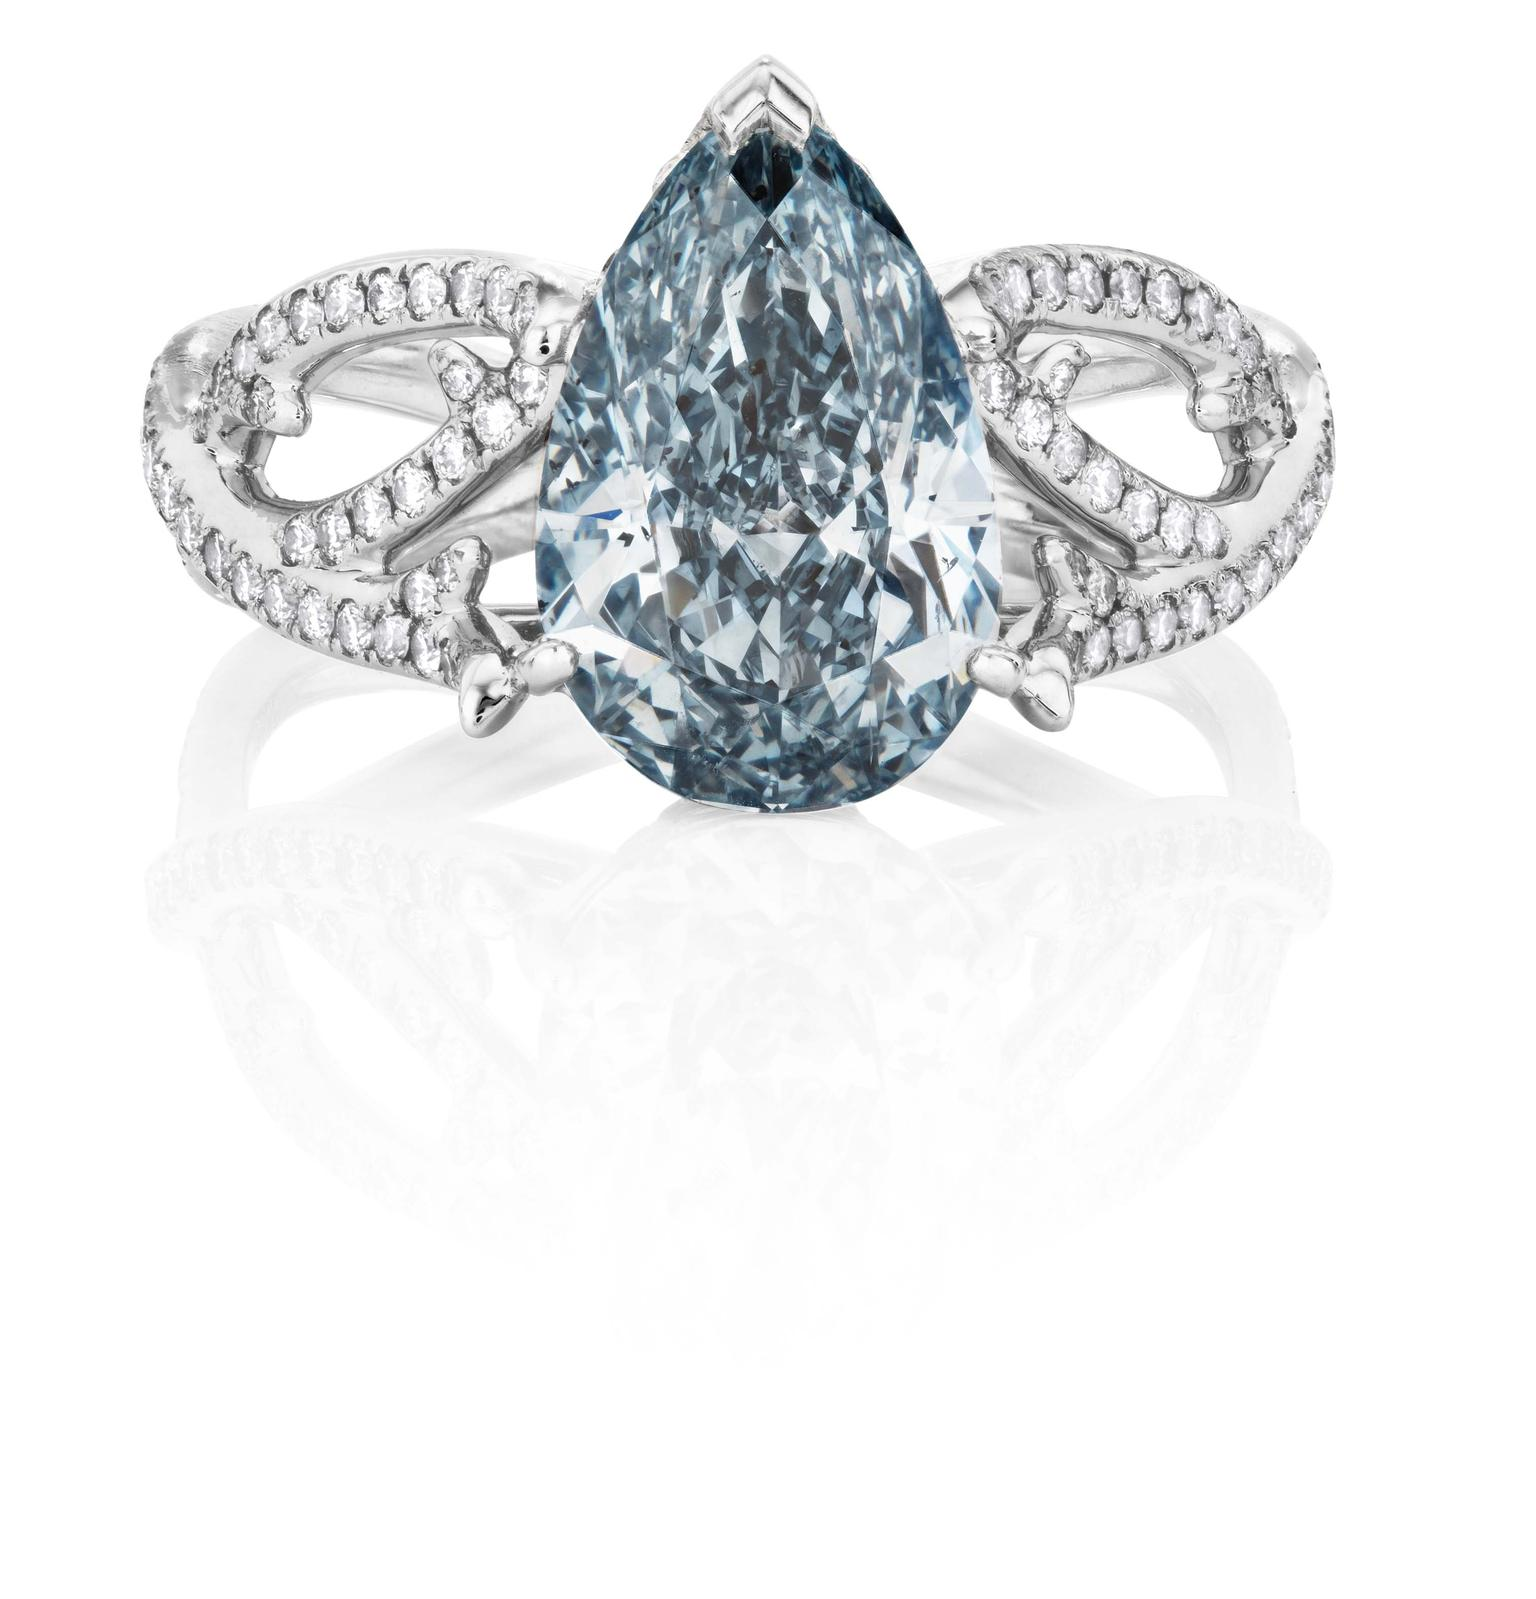 De Beers 1888 Master Diamonds Volute ring featuring a pear-shaped blue diamond solitaire.